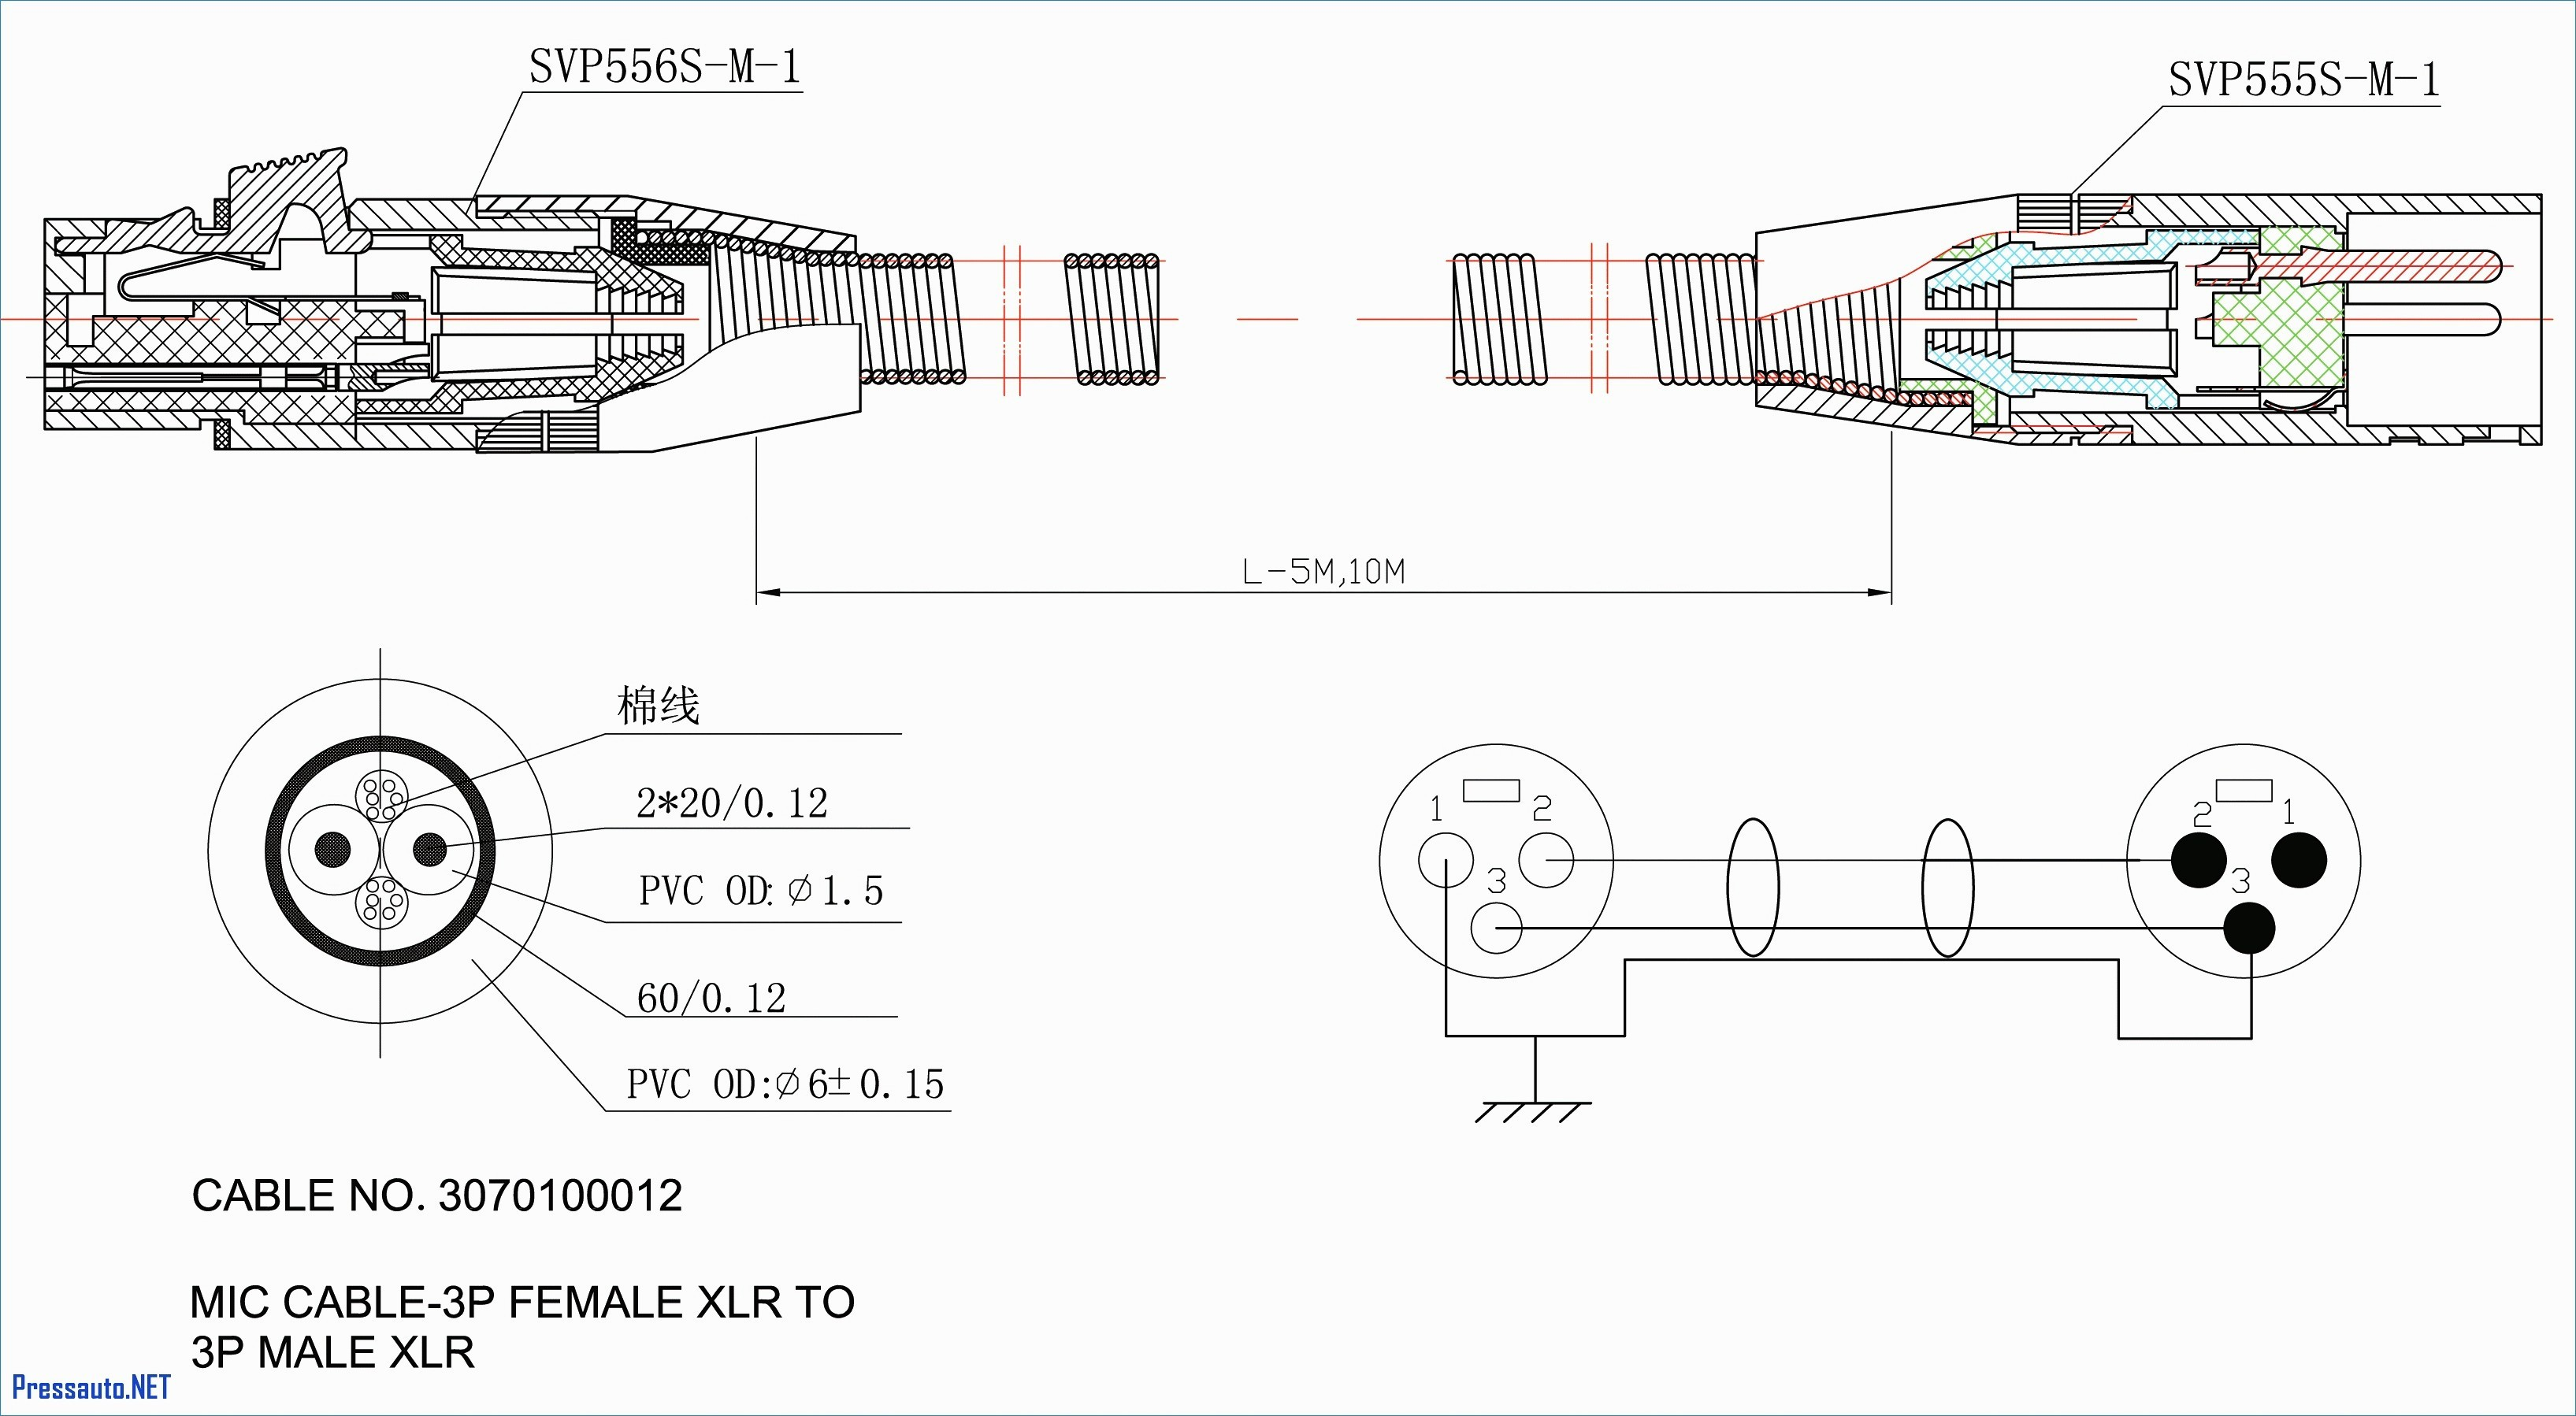 290 Chrysler Pacifica Amp Wiring Diagram | Wiring Library68.183.226.148